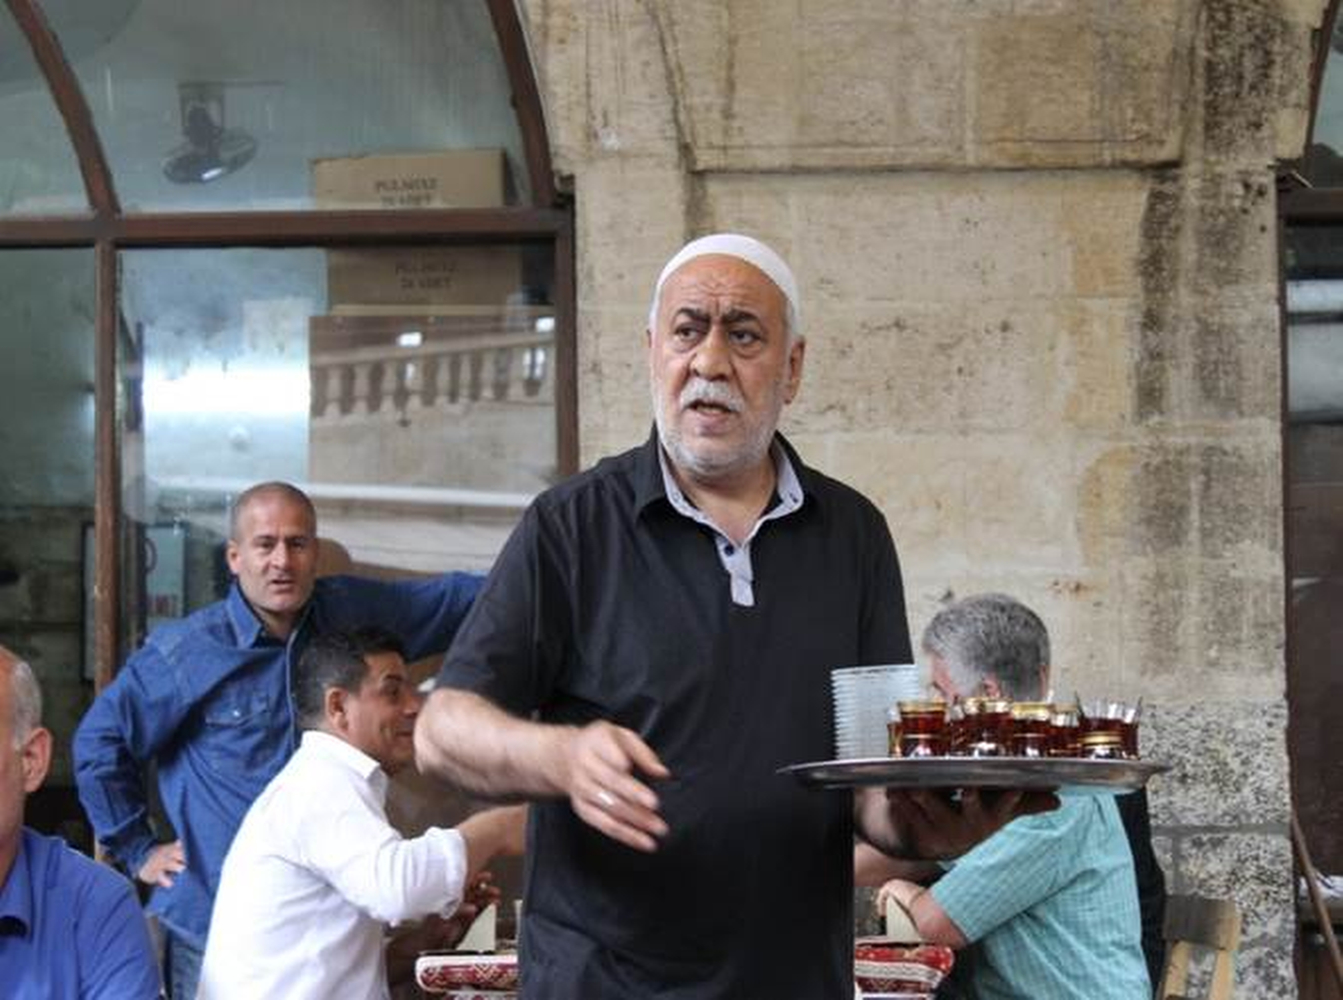 A waiter serving Turkish tea at a cafeŽ in Urfa, southeast Turkey. Cafes are places to socialize, play games and have some beverages. Phillip Dube '16/Bates College.